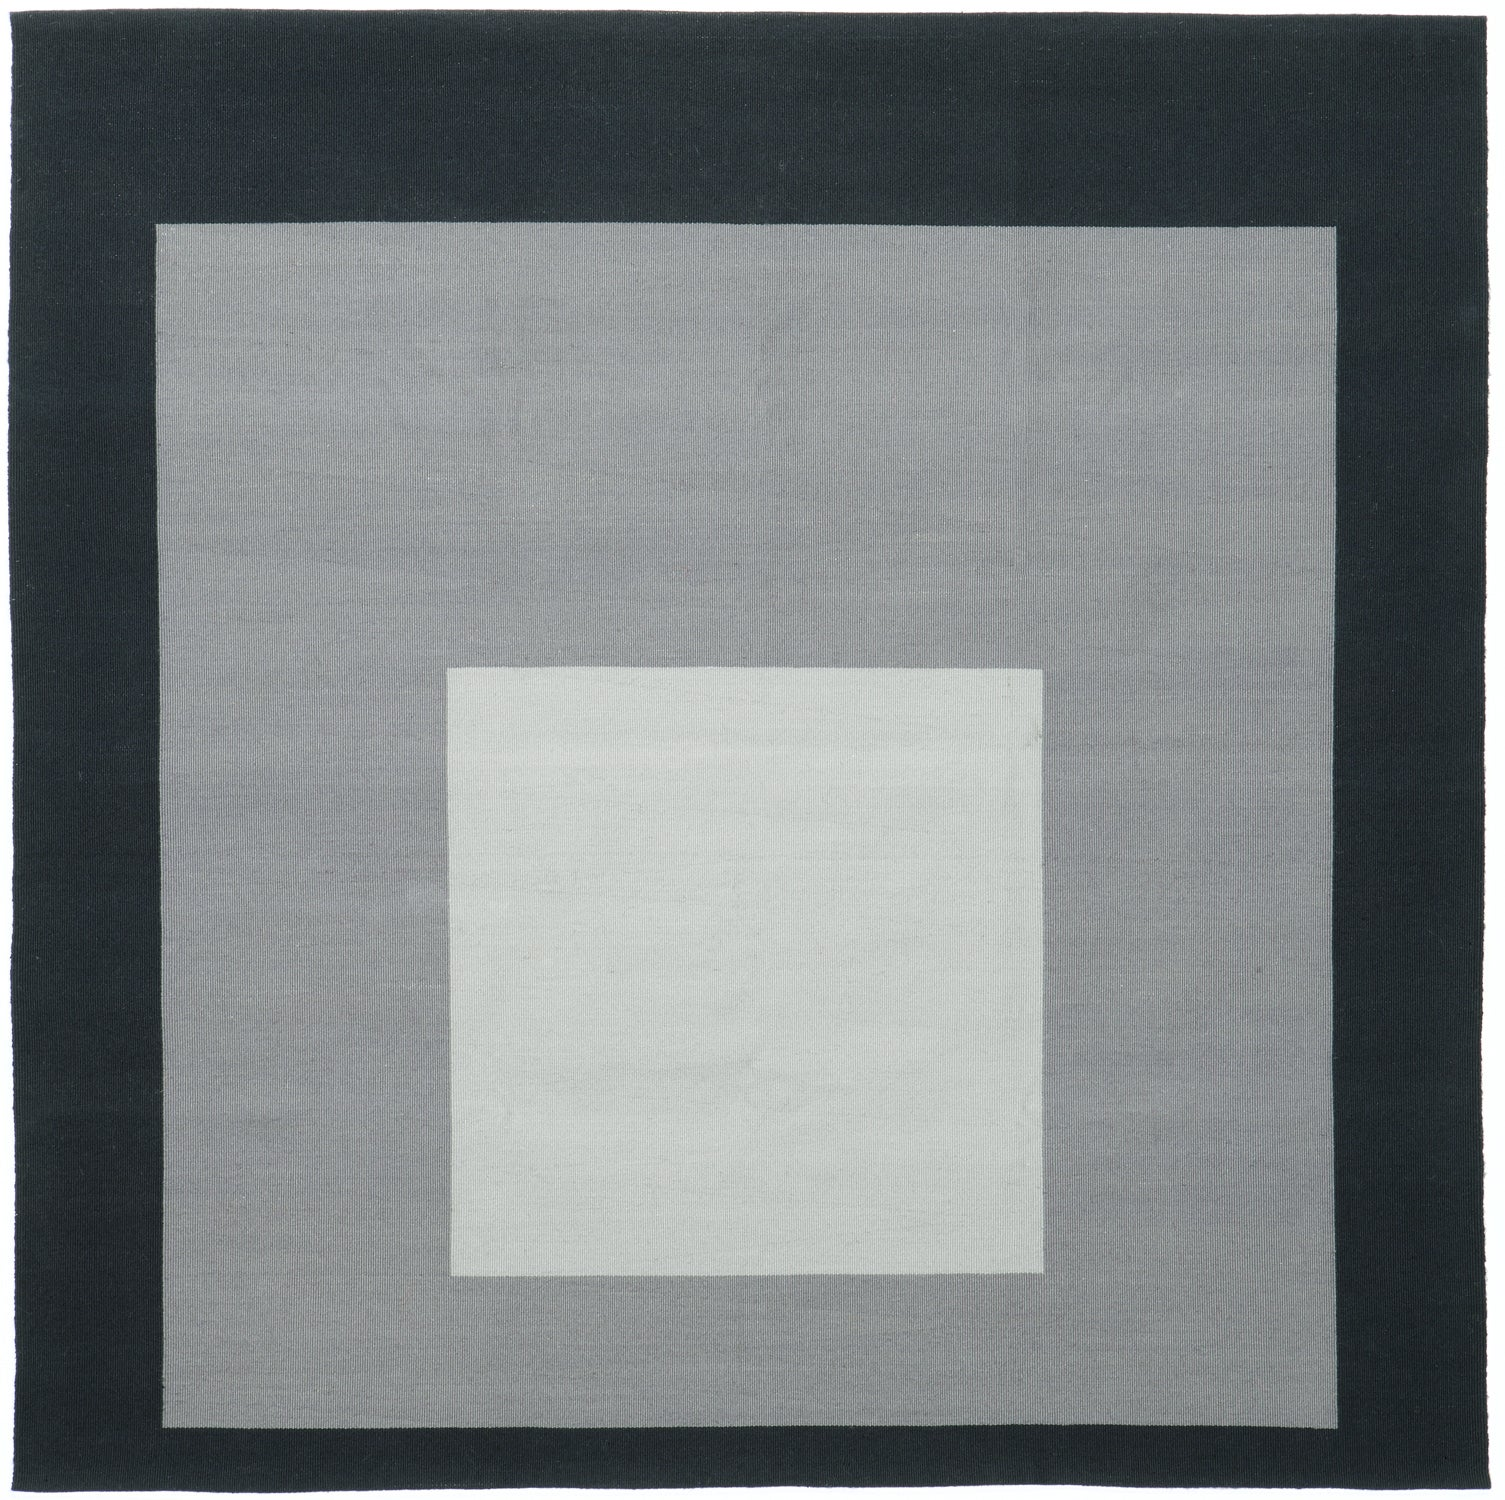 Homage to the Square Study (Tapestry) by Josef Albers